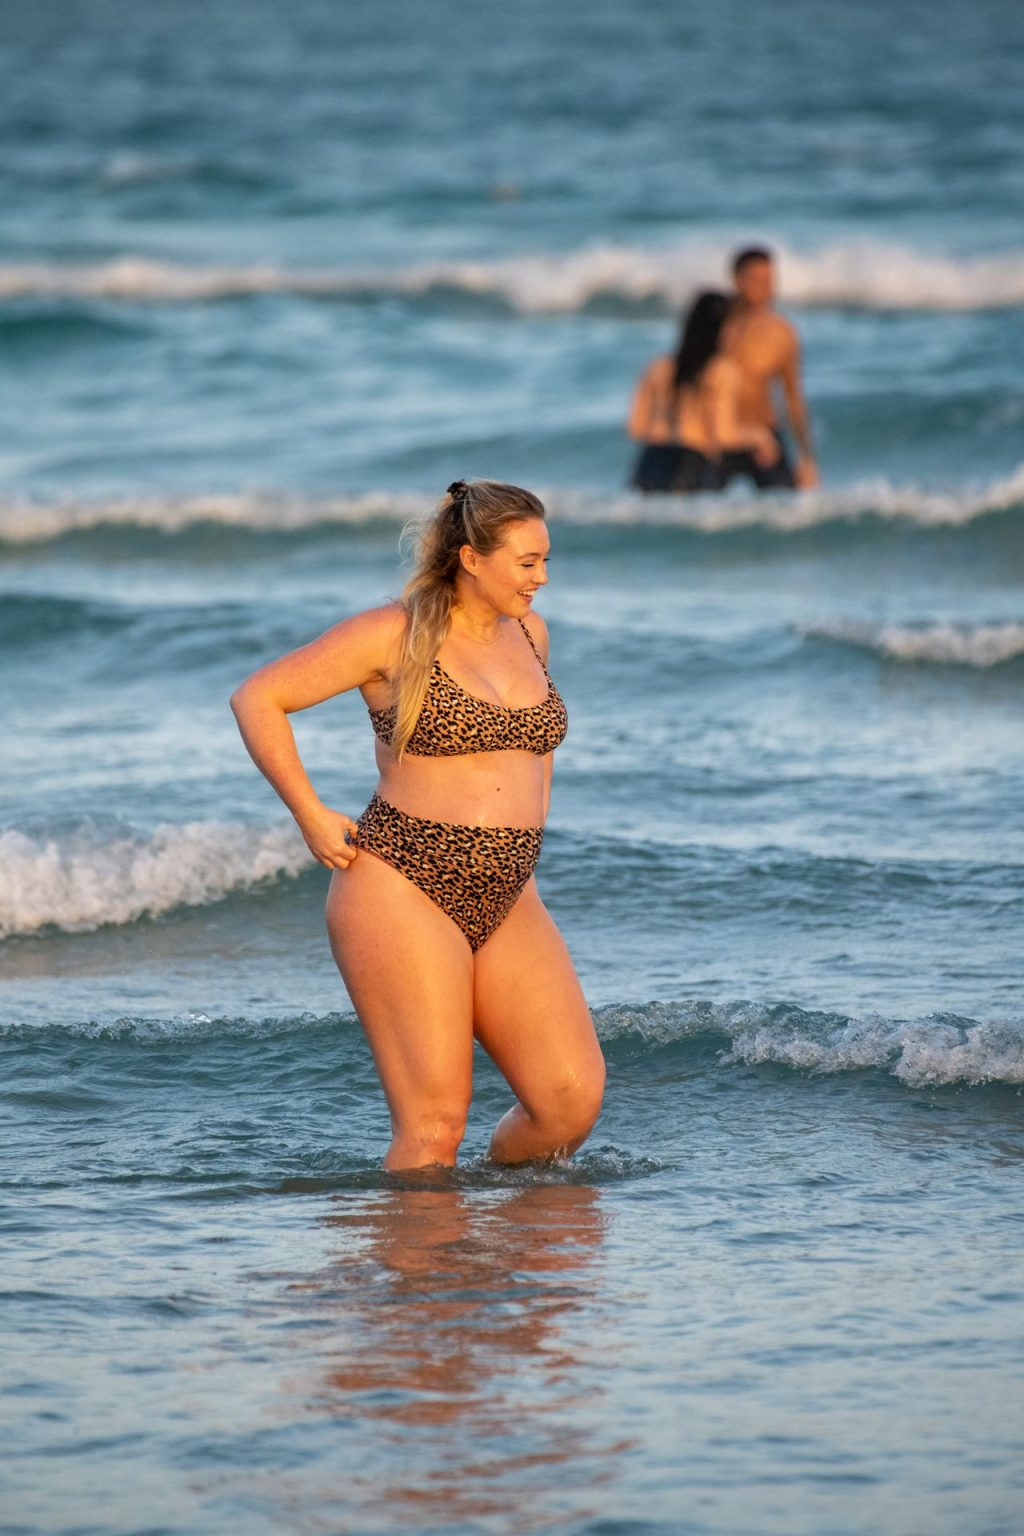 Iskra Lawrence Sexy The Fappening Blog 13 1024x1536 - Heavily Pregnant Model Iskra Lawrence Takes A Sunset Dip In Miami Beach (44 Photos)